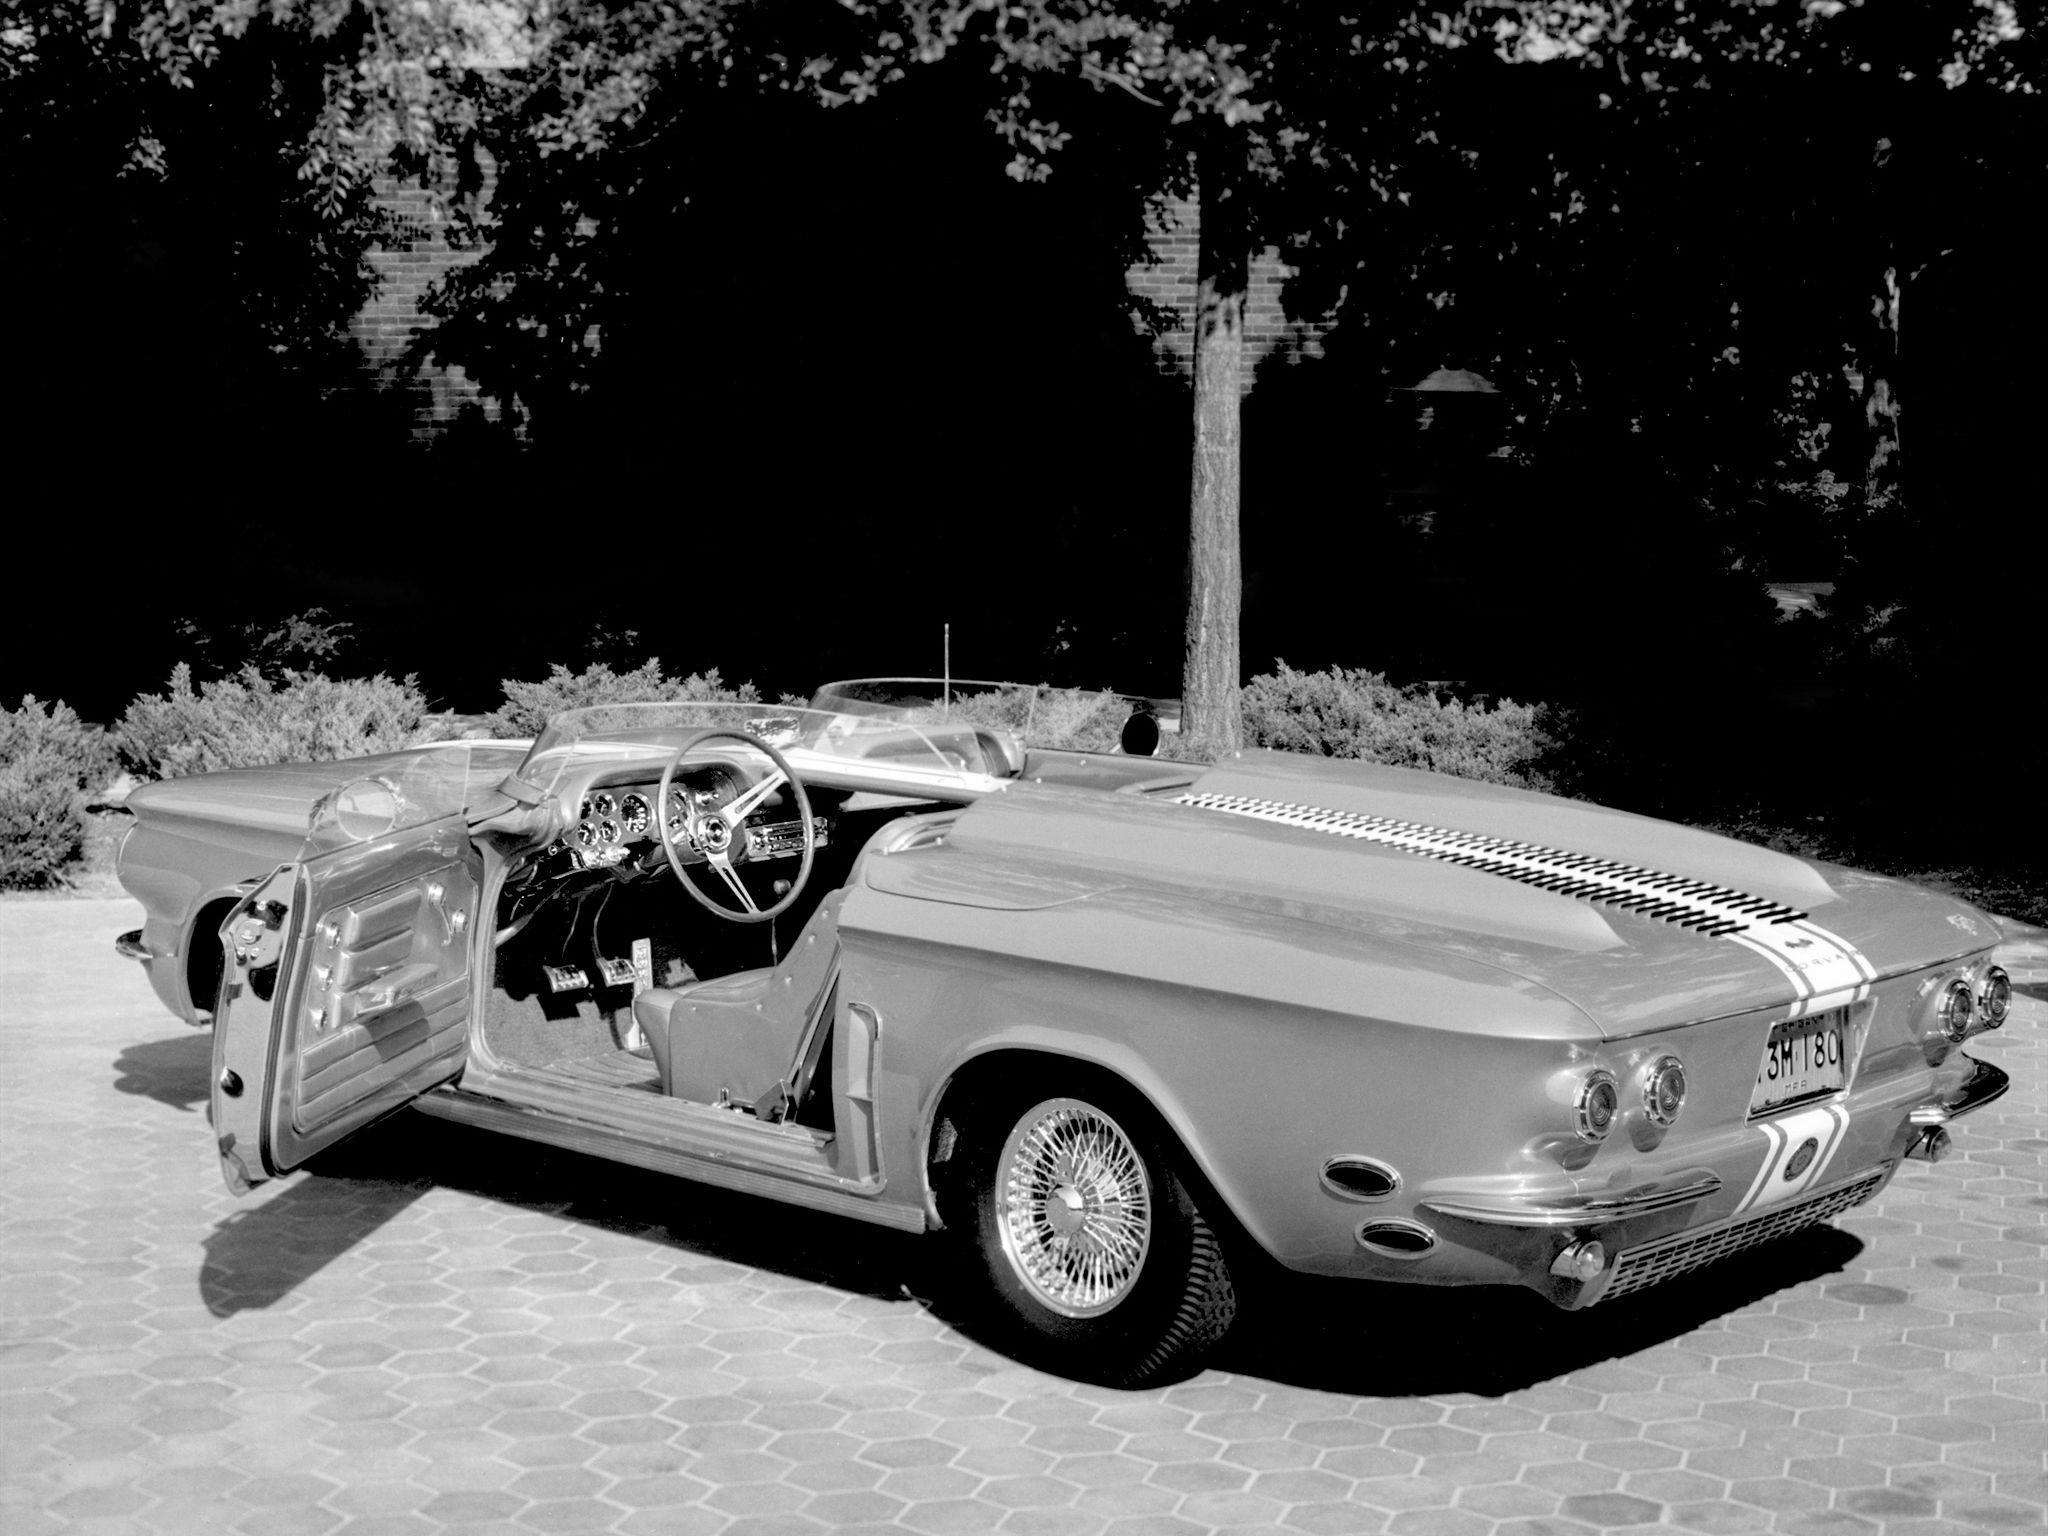 Incroyable 1962 Chevrolet Corvair Super Spyder Concept Car